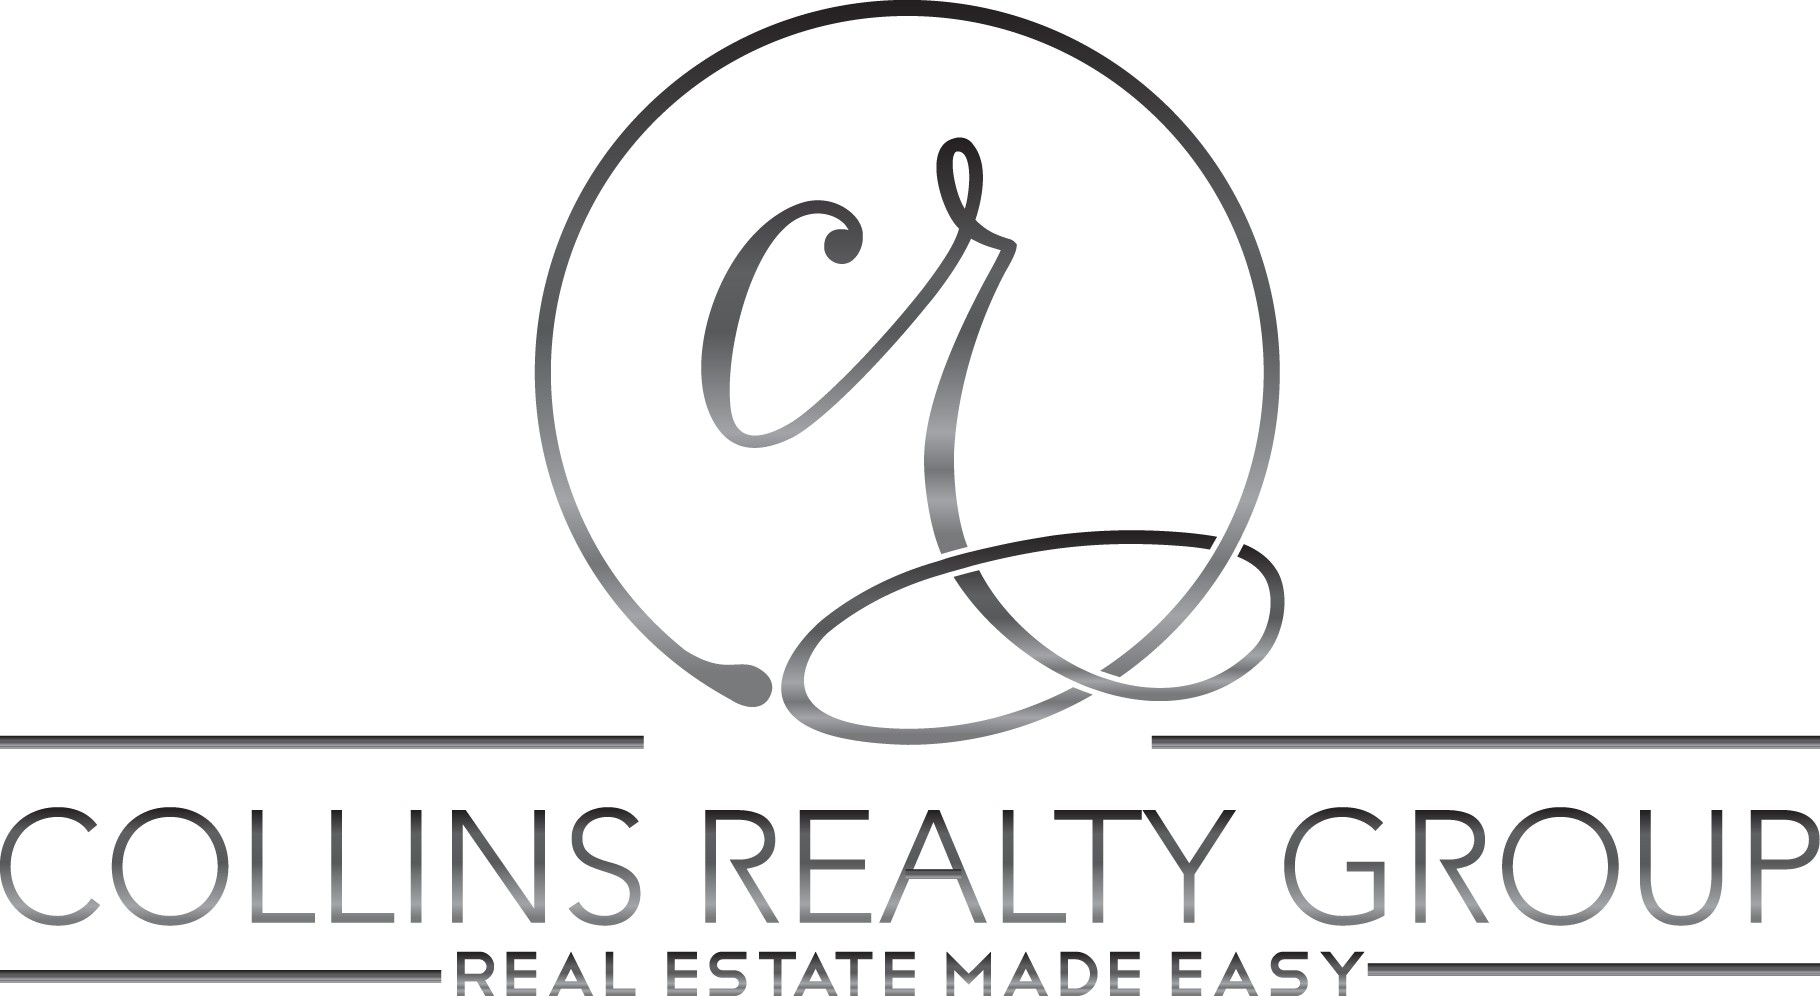 COLLINS REALTY GROUP needs stylish, sleek new logo in a modern font. I prefer monogram script design like my logo now